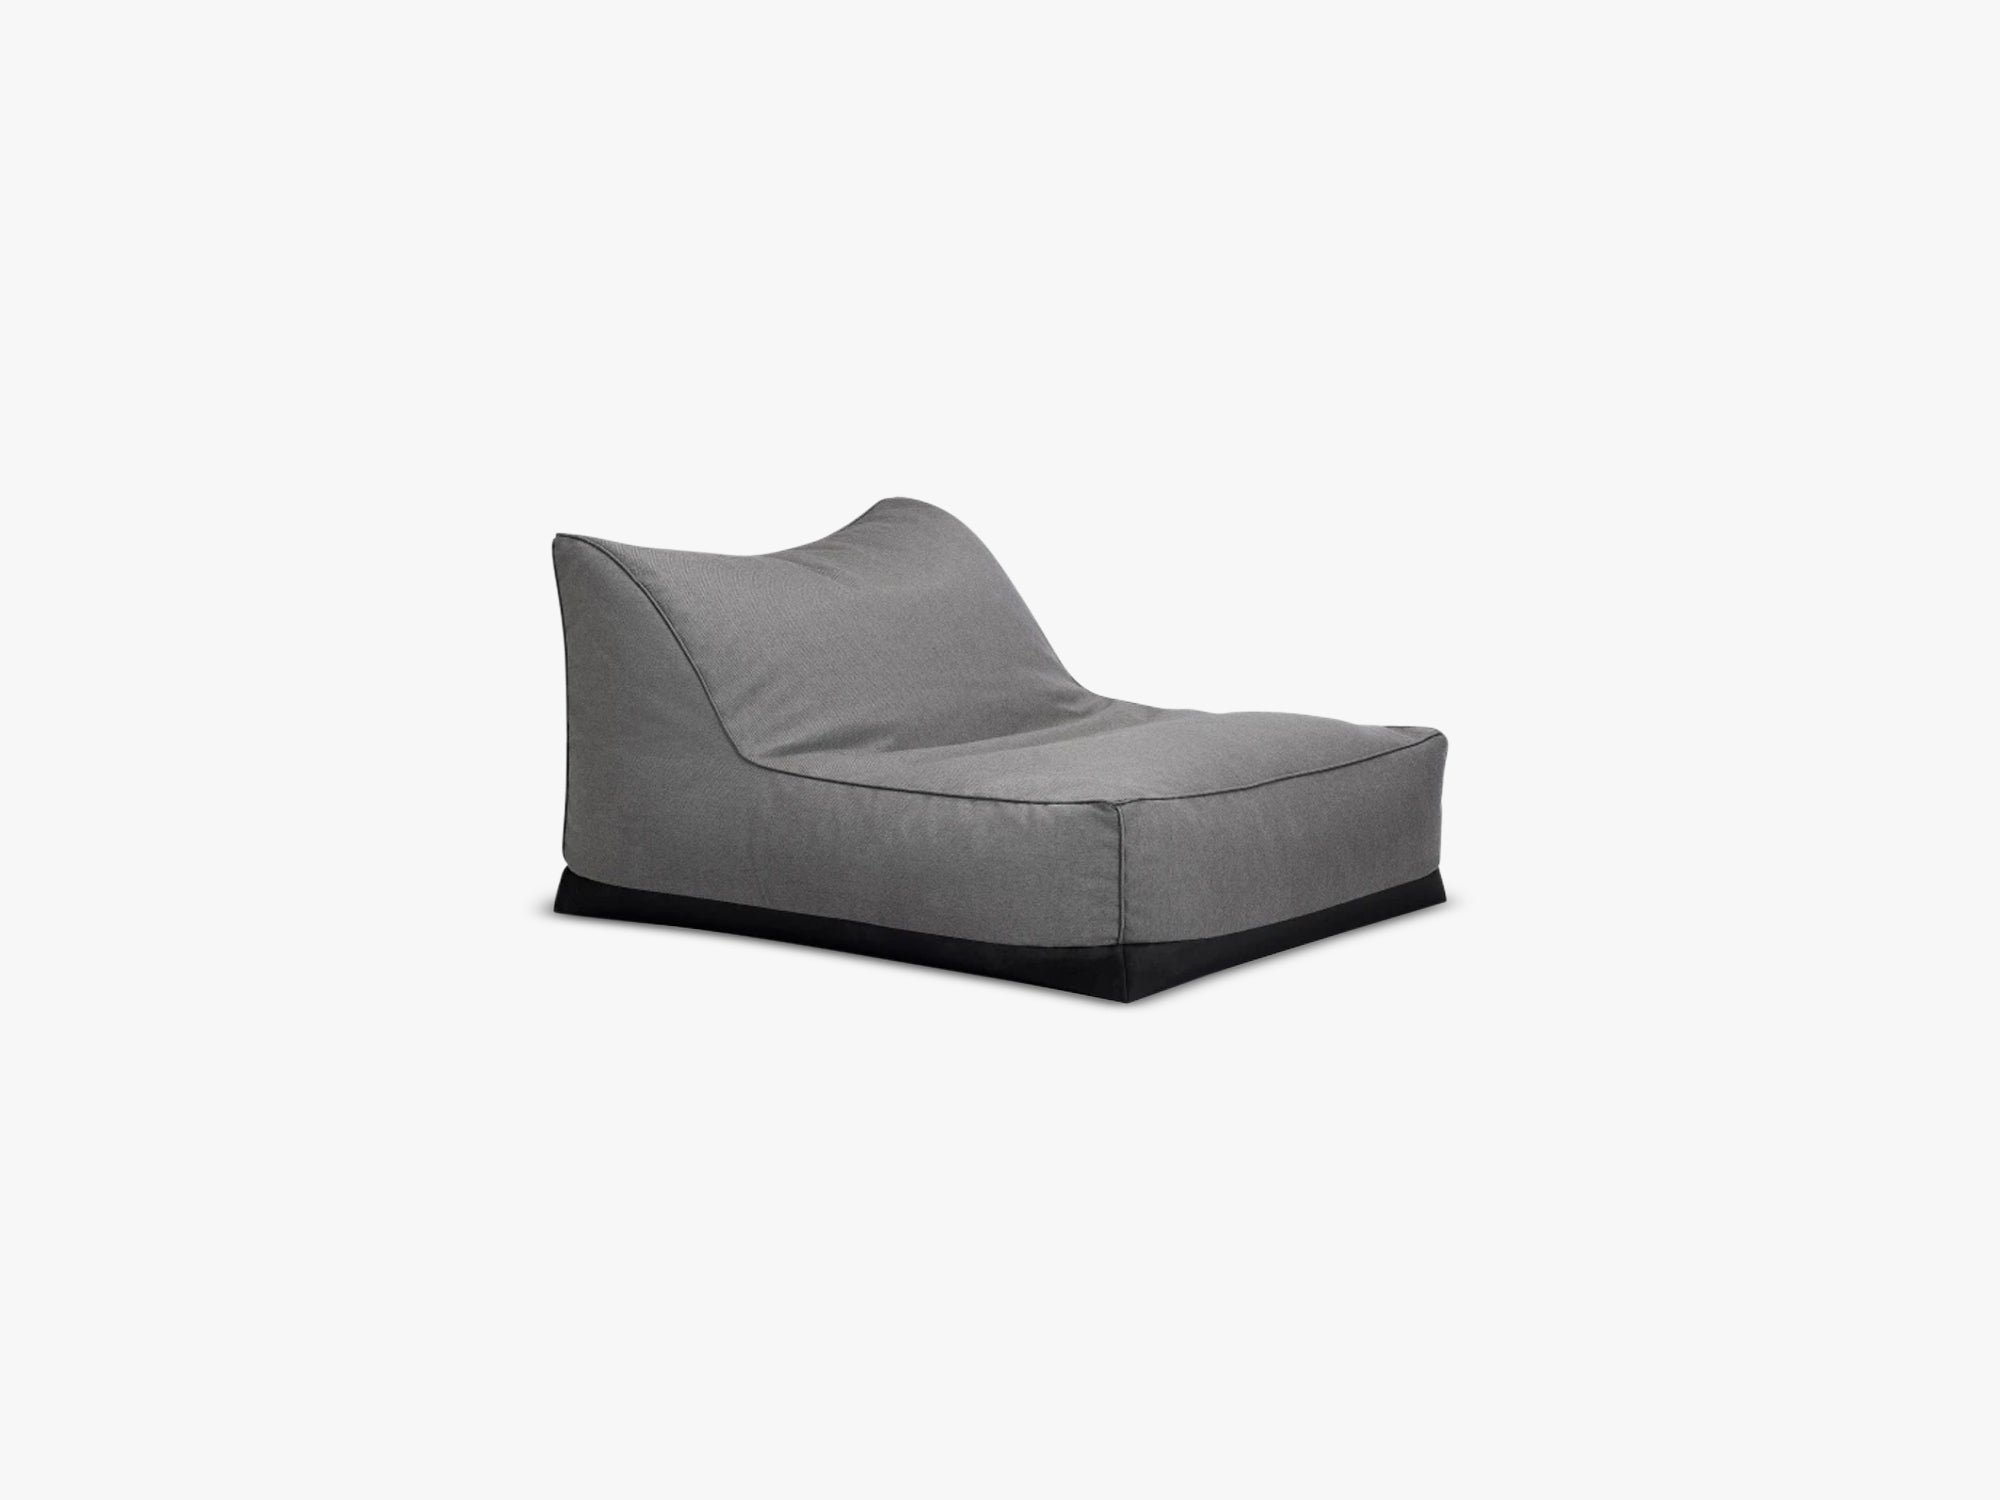 Storm Lounge Chair, Medium, Dark Taupe fra NORR11